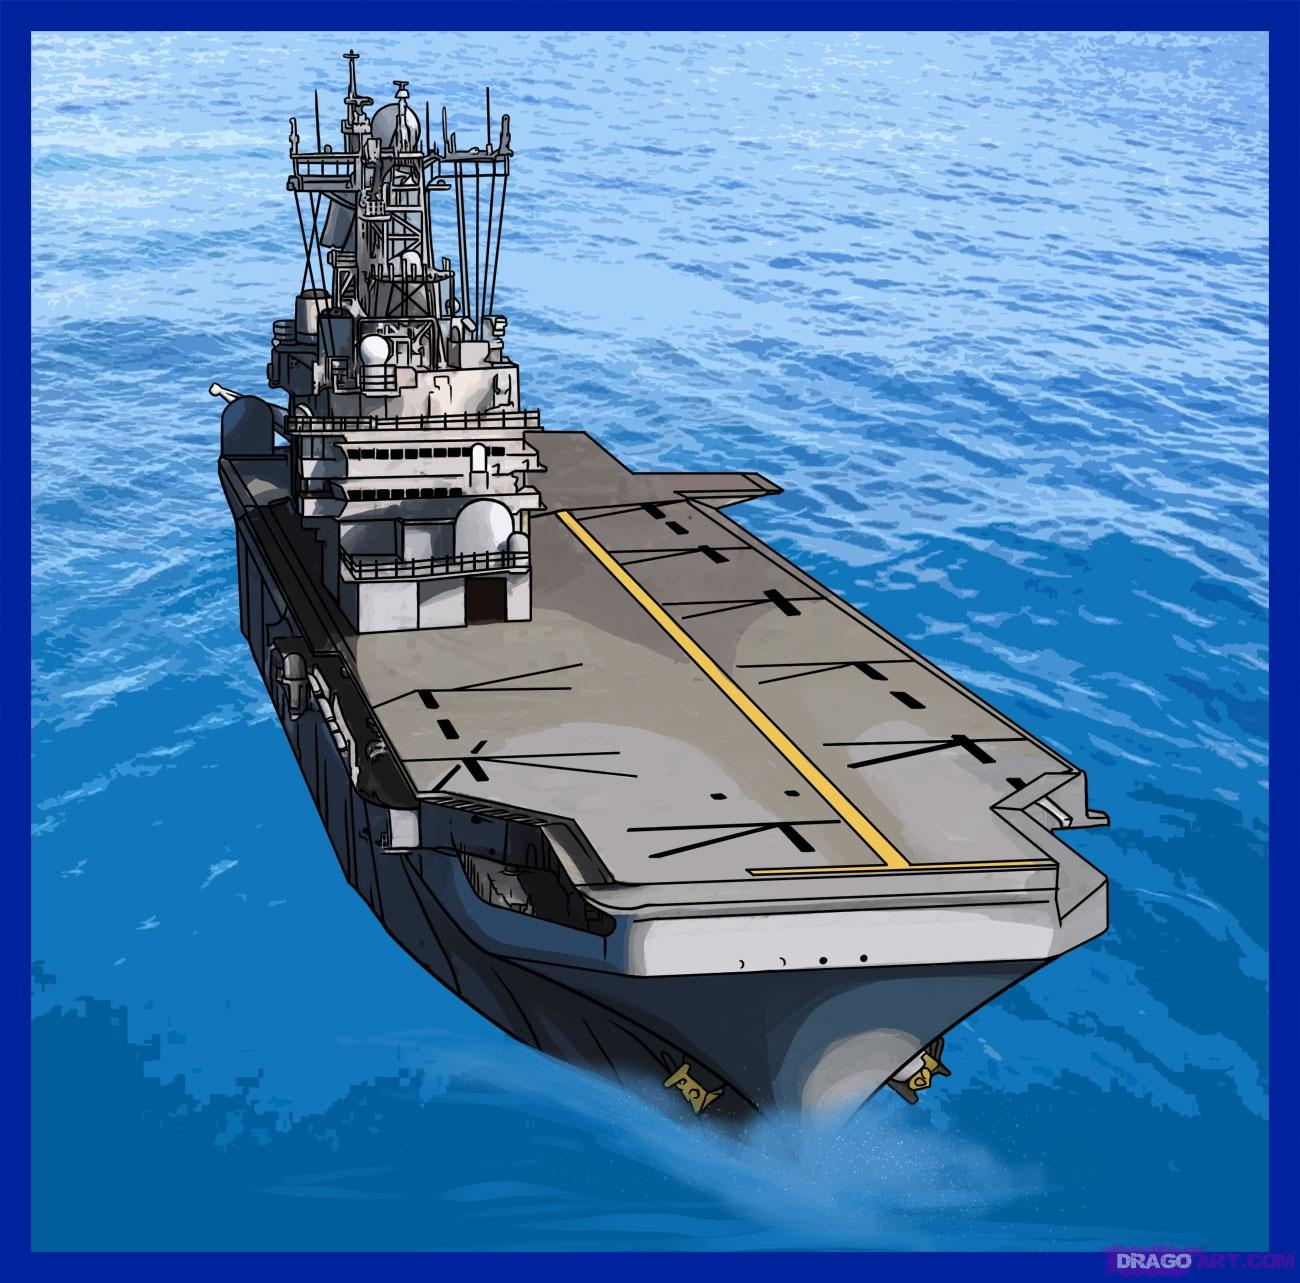 Drawn ship sea Wikipedia drawing carrier Aircraft carrier